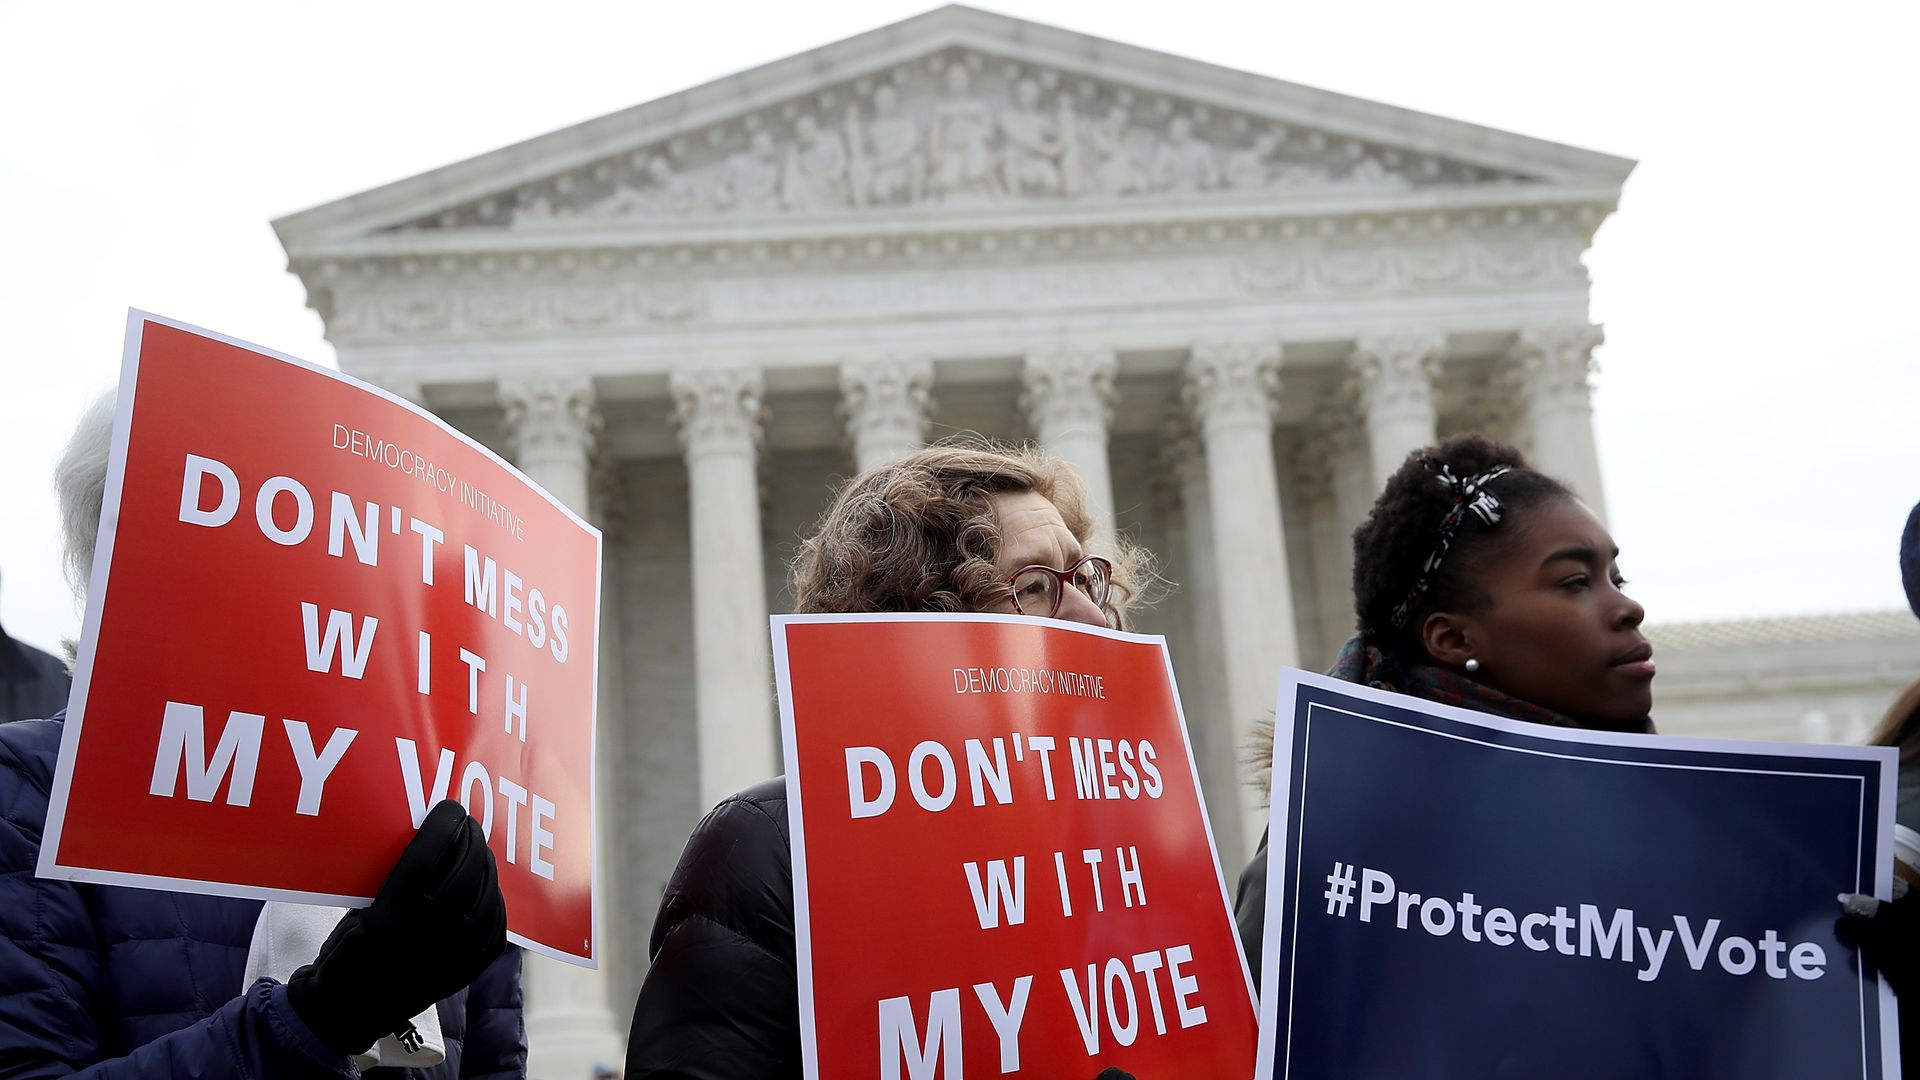 Protesters outside the U.S. Supreme Court Cause in January it is hears arguments in a challenge to Ohio's voter roll purges.